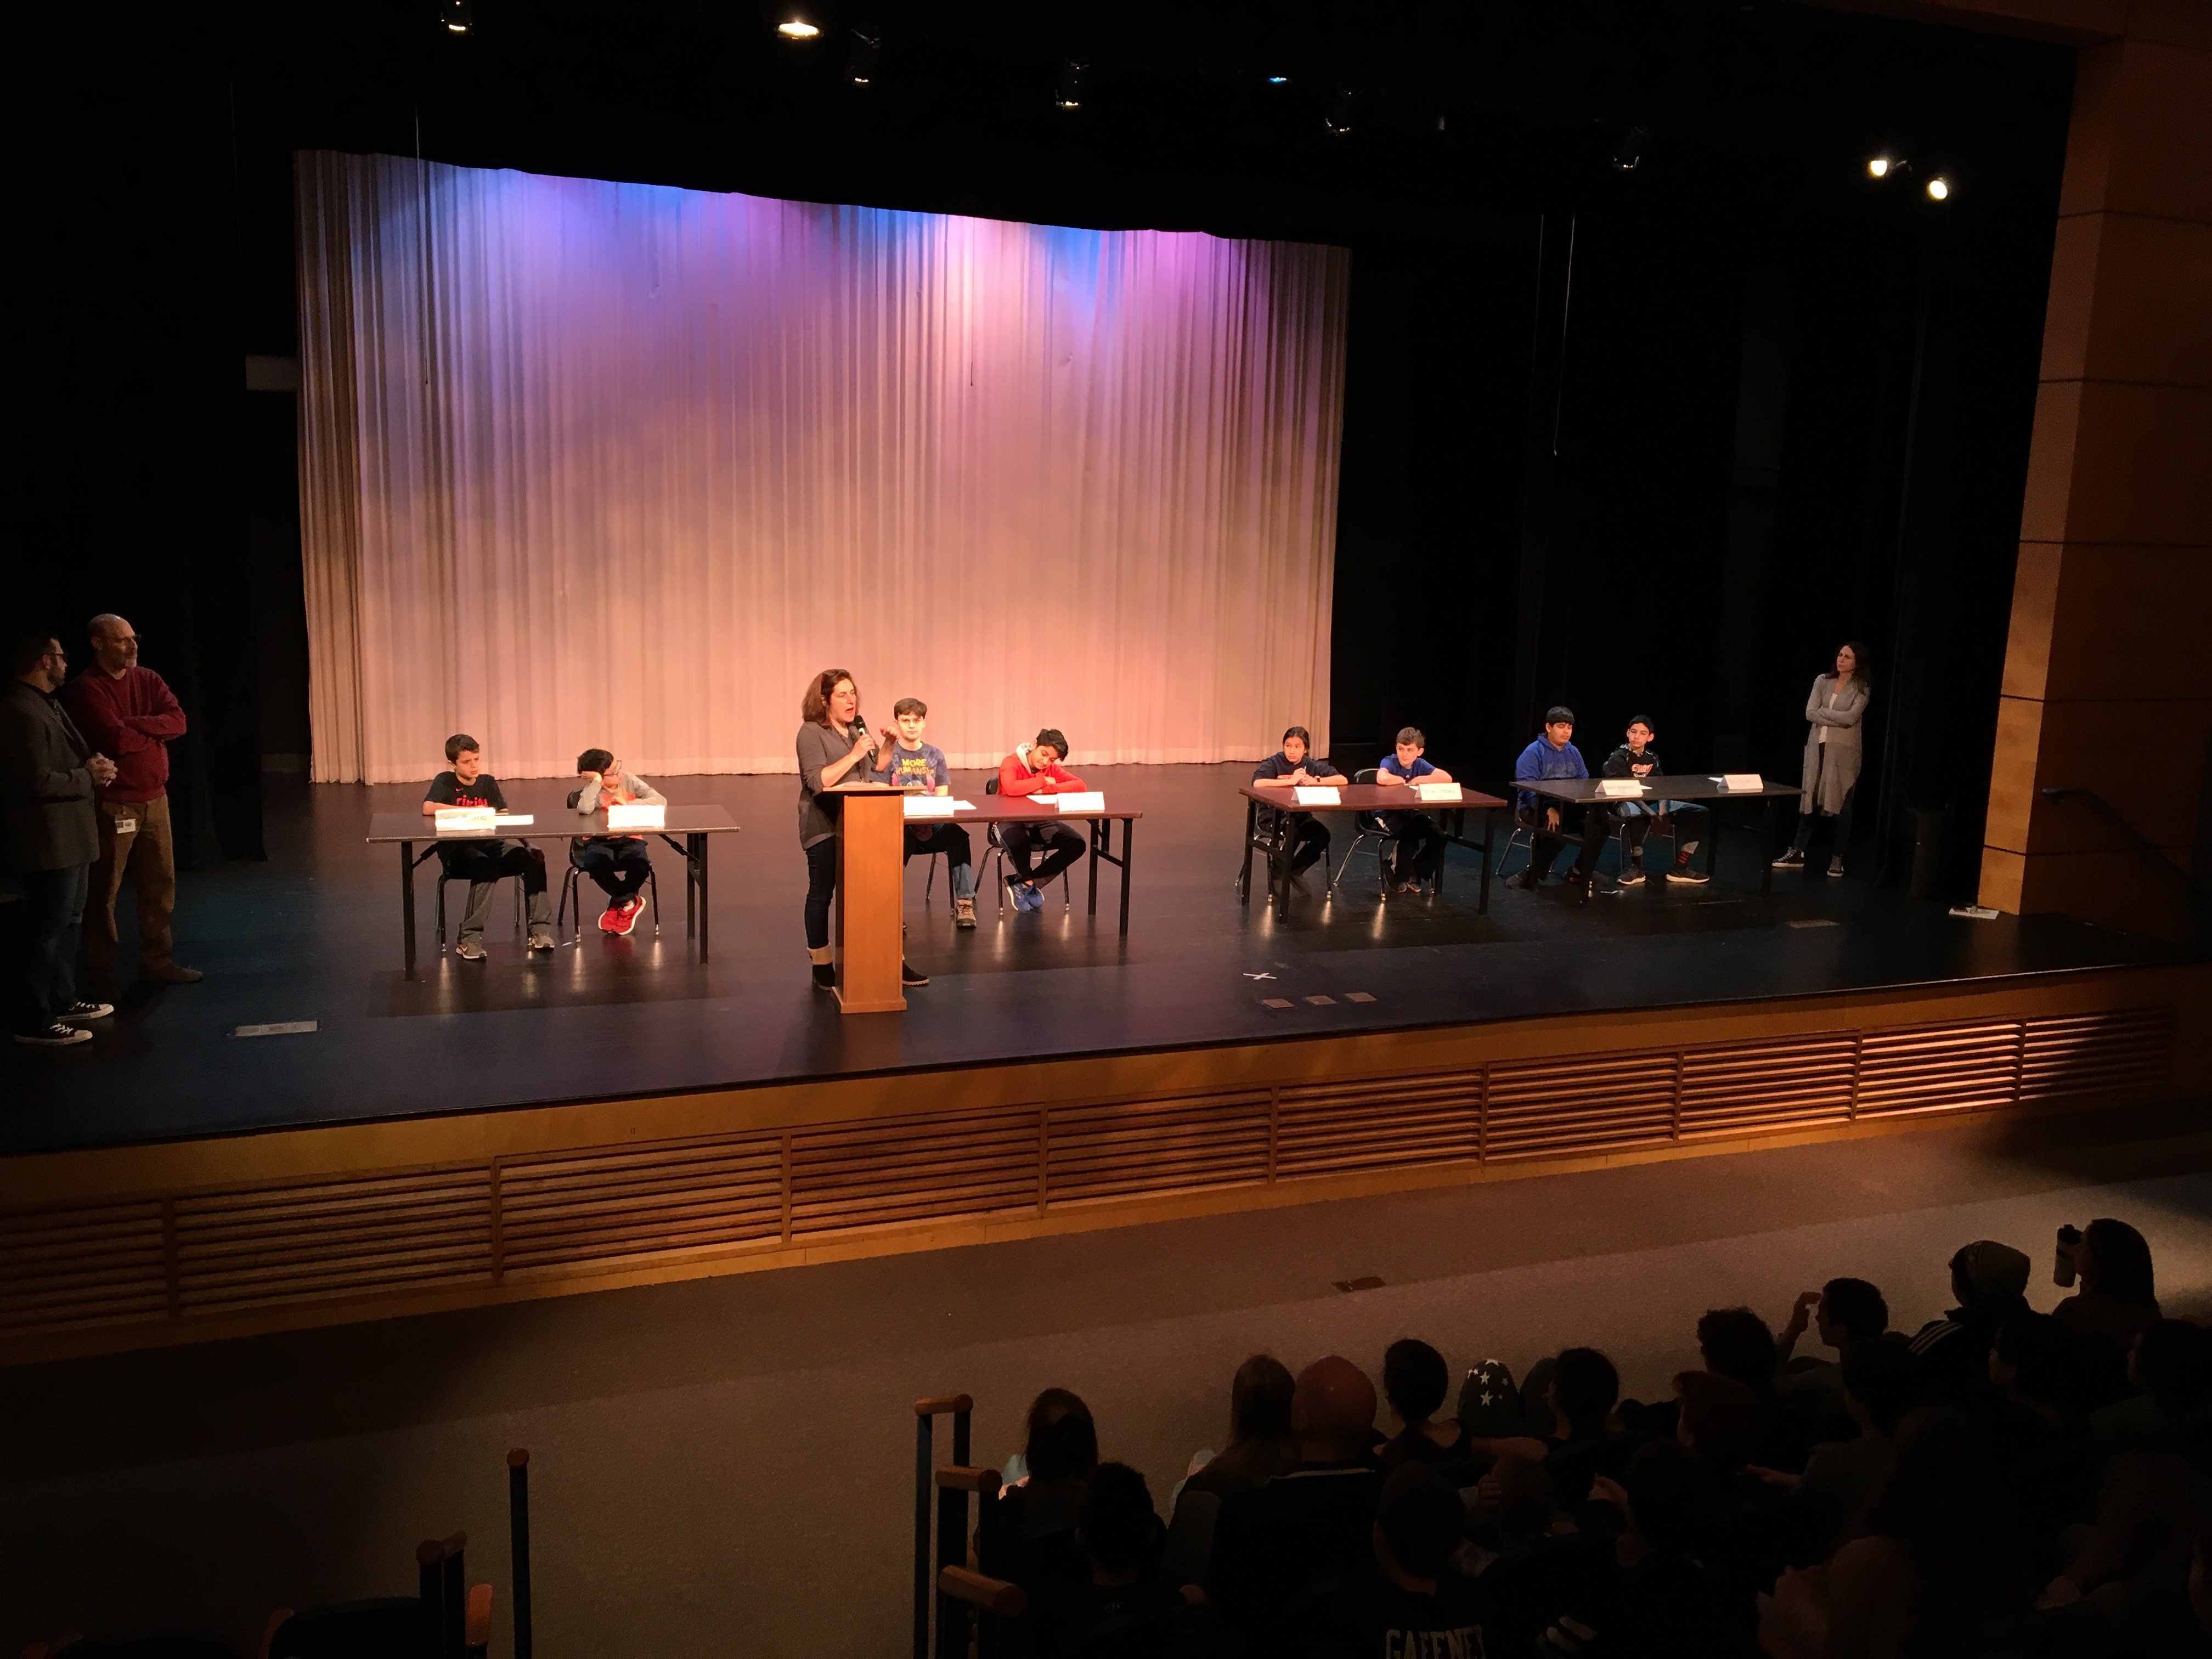 National Geography Bee. Contestants seated at tables on a stage.